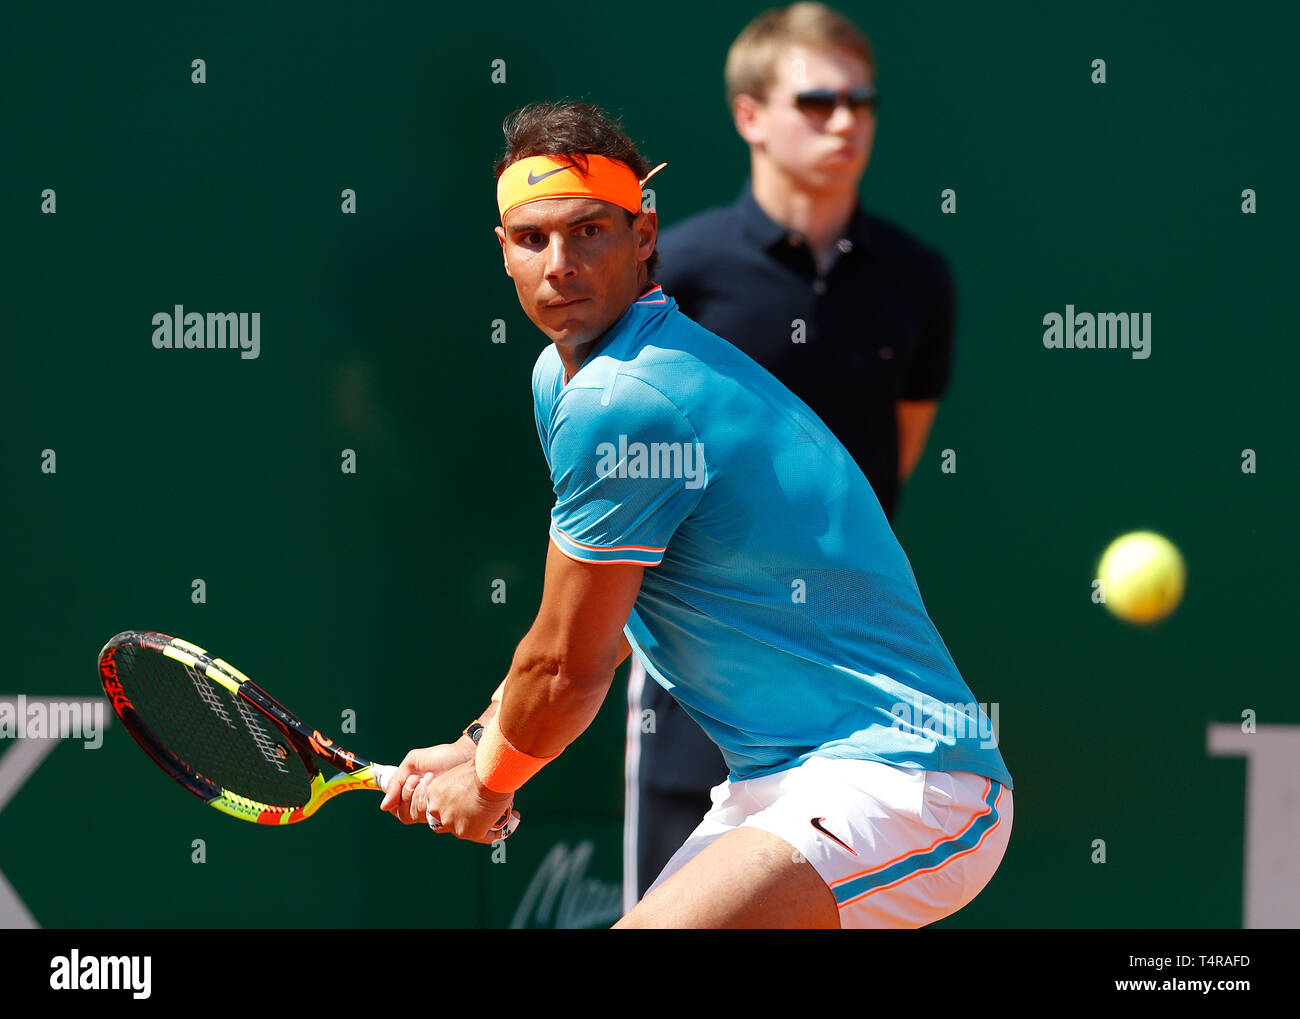 Roquebrune Cap Martin, France. 17th Apr, 2019. Rafael Nadal of Spain hits a return during the singles second match against Roberto Bautista Agut of Spain at the Monte-Carlo Rolex Masters tennis tournament in Roquebrune Cap Martin, France, April 17, 2019. Credit: Nicolas Marie/Xinhua/Alamy Live News Stock Photo